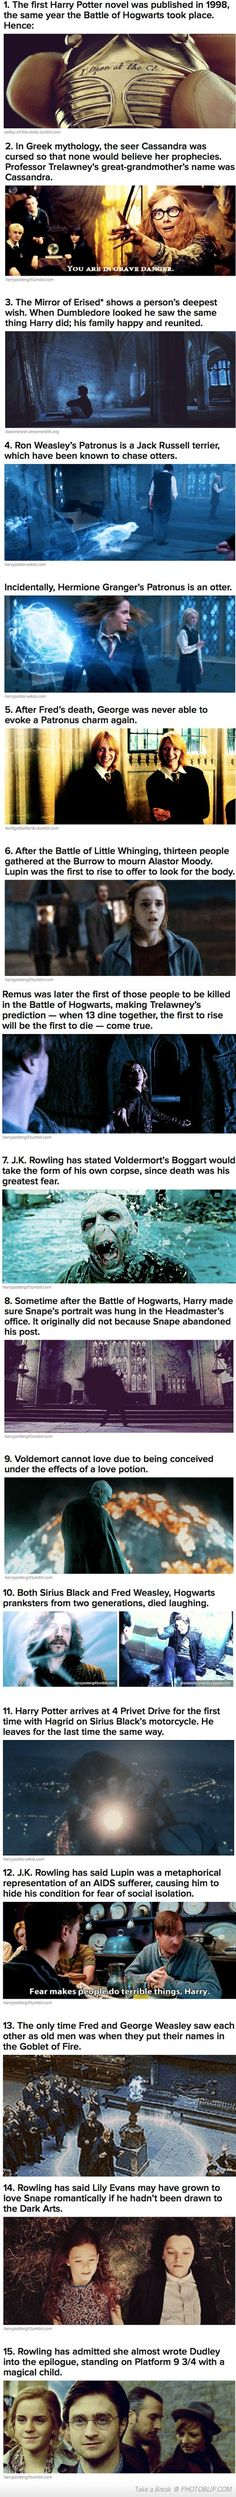 So many great things about the Harry Potter Universe.